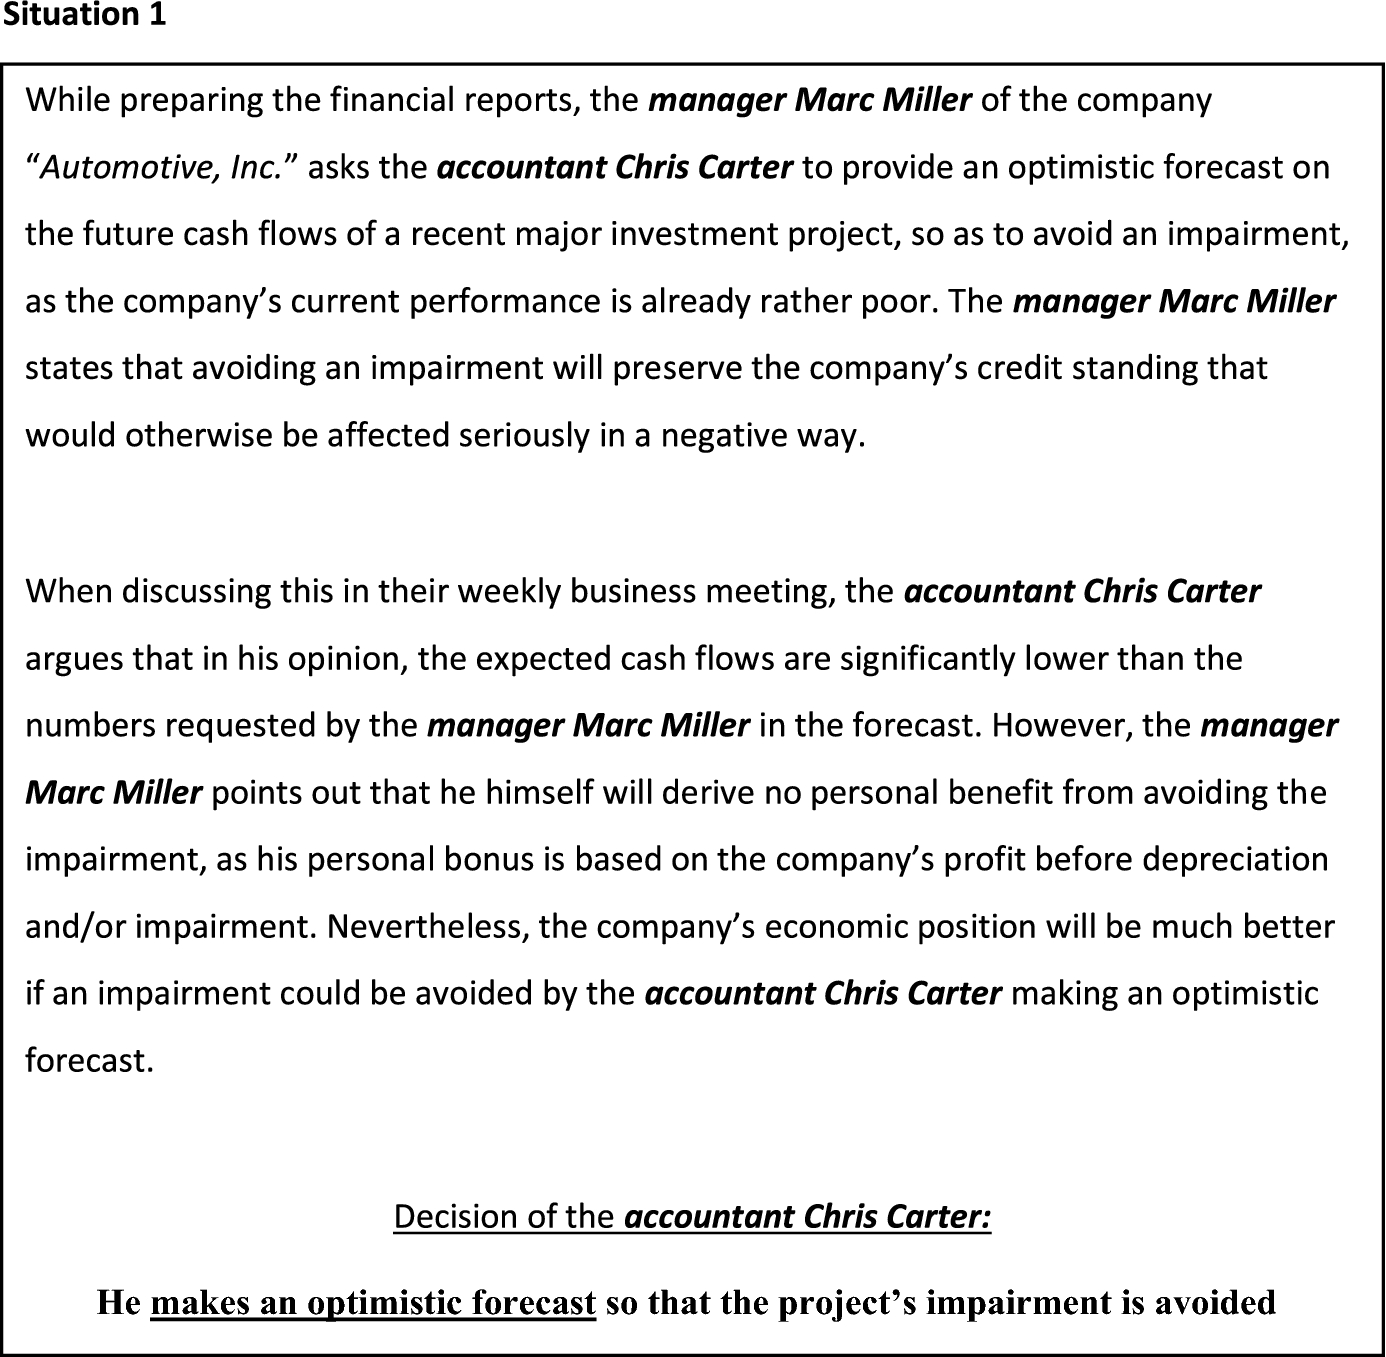 Research proposal form structure technology project services ltd